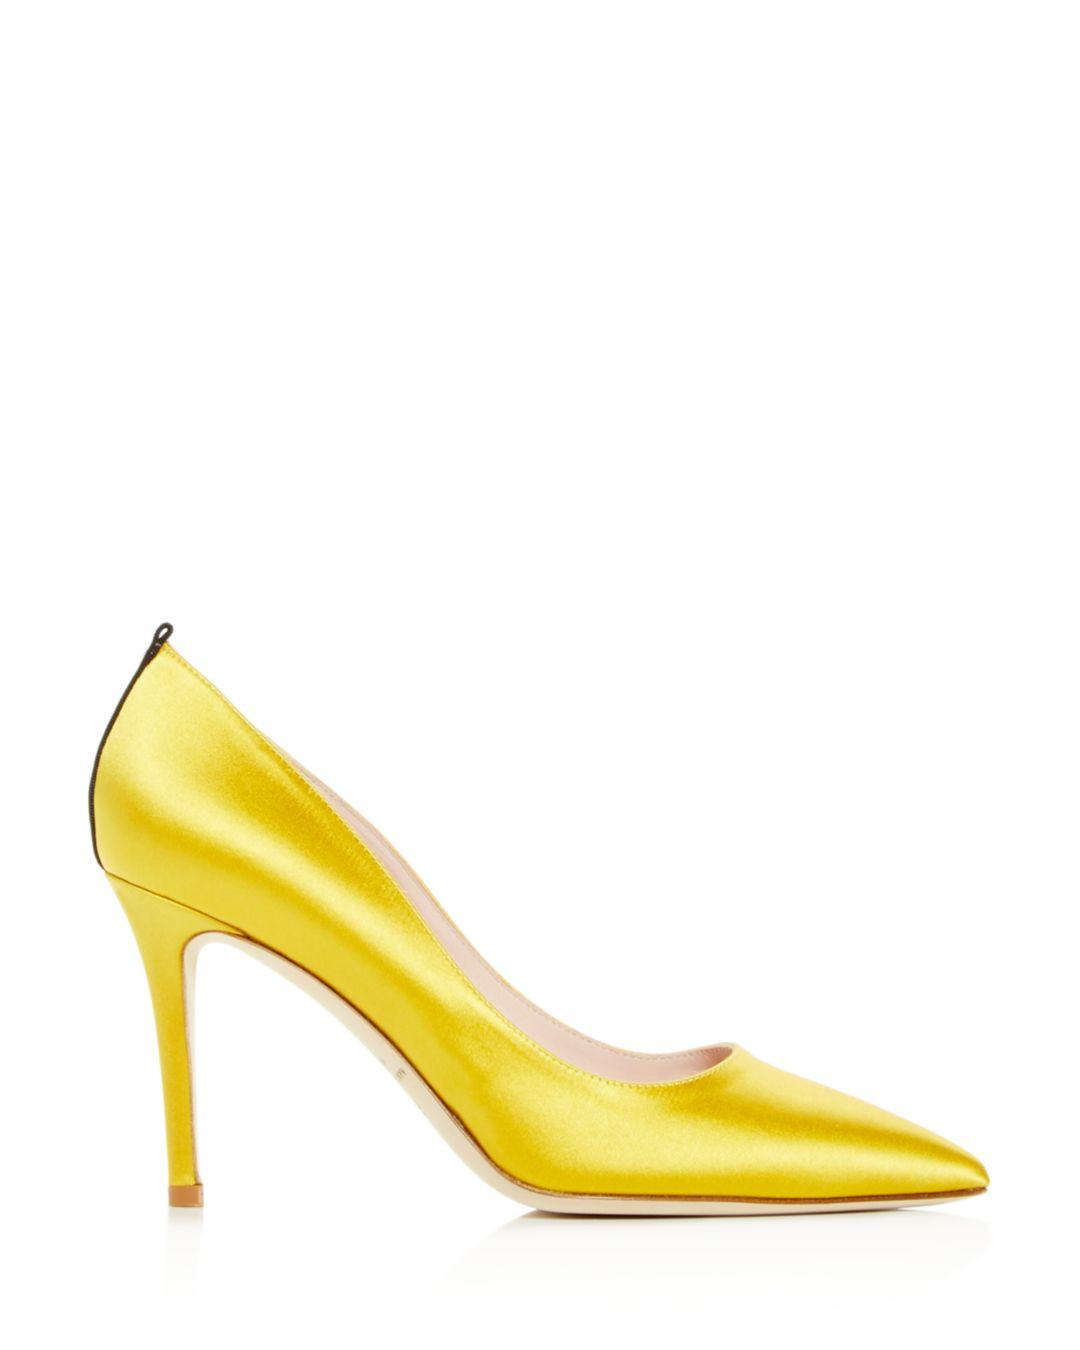 aa30a55fd0 Sjp By Sarah Jessica Parker Women's Fawn Pointed-toe Pumps in Metallic -  Lyst